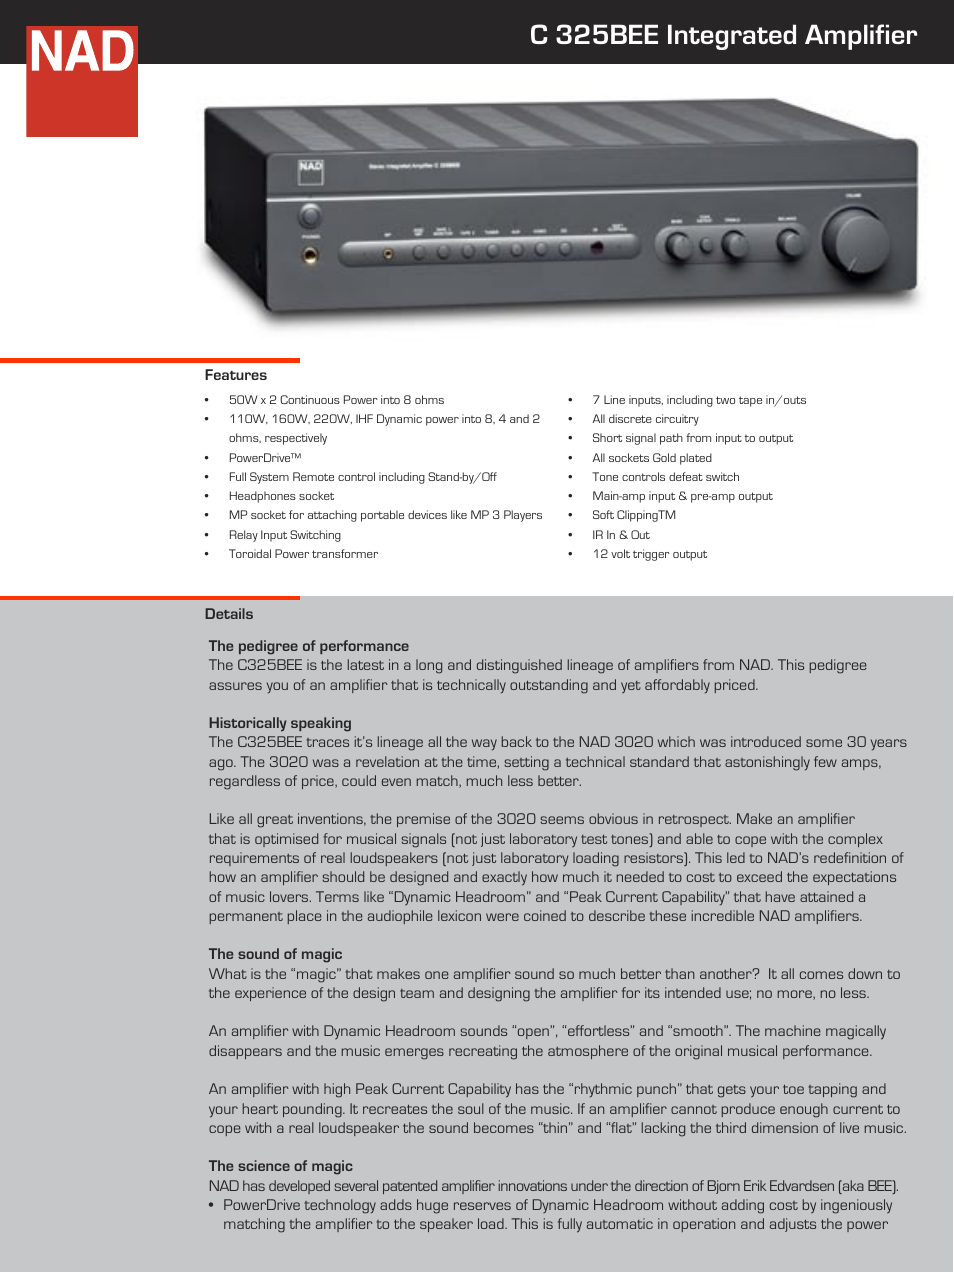 Nad C 325bee User Manual 2 Pages Inserting A Tone Control Between Preamp And Power Amp